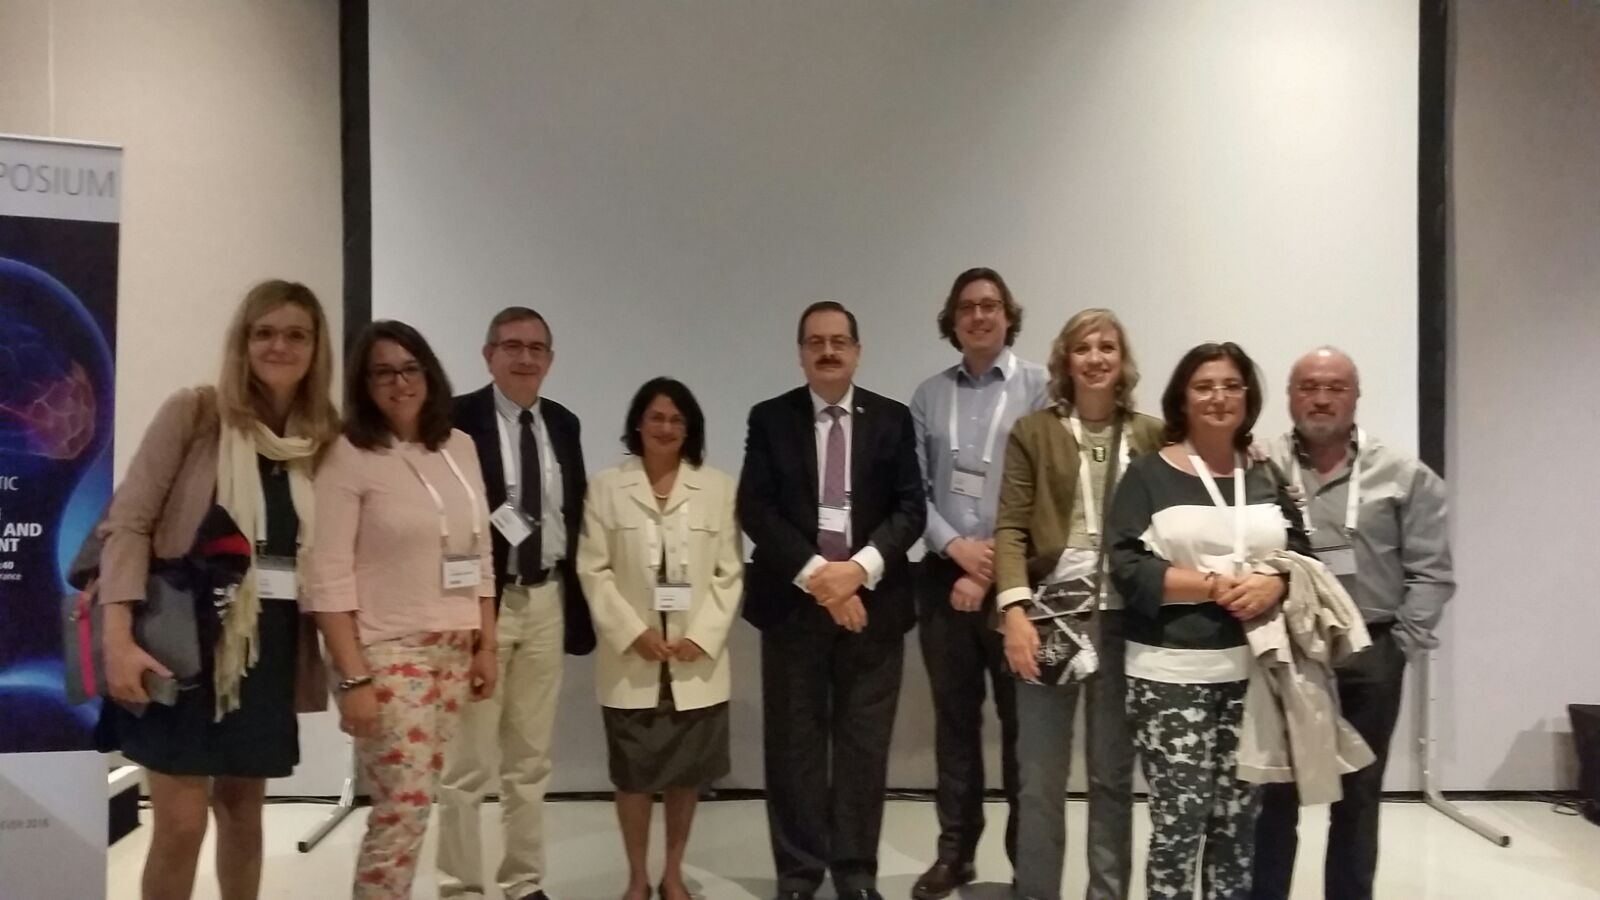 Dr. Marta Pazos participates at the 2016 Congress of the European Association for Vision and Eye Research (EVER)